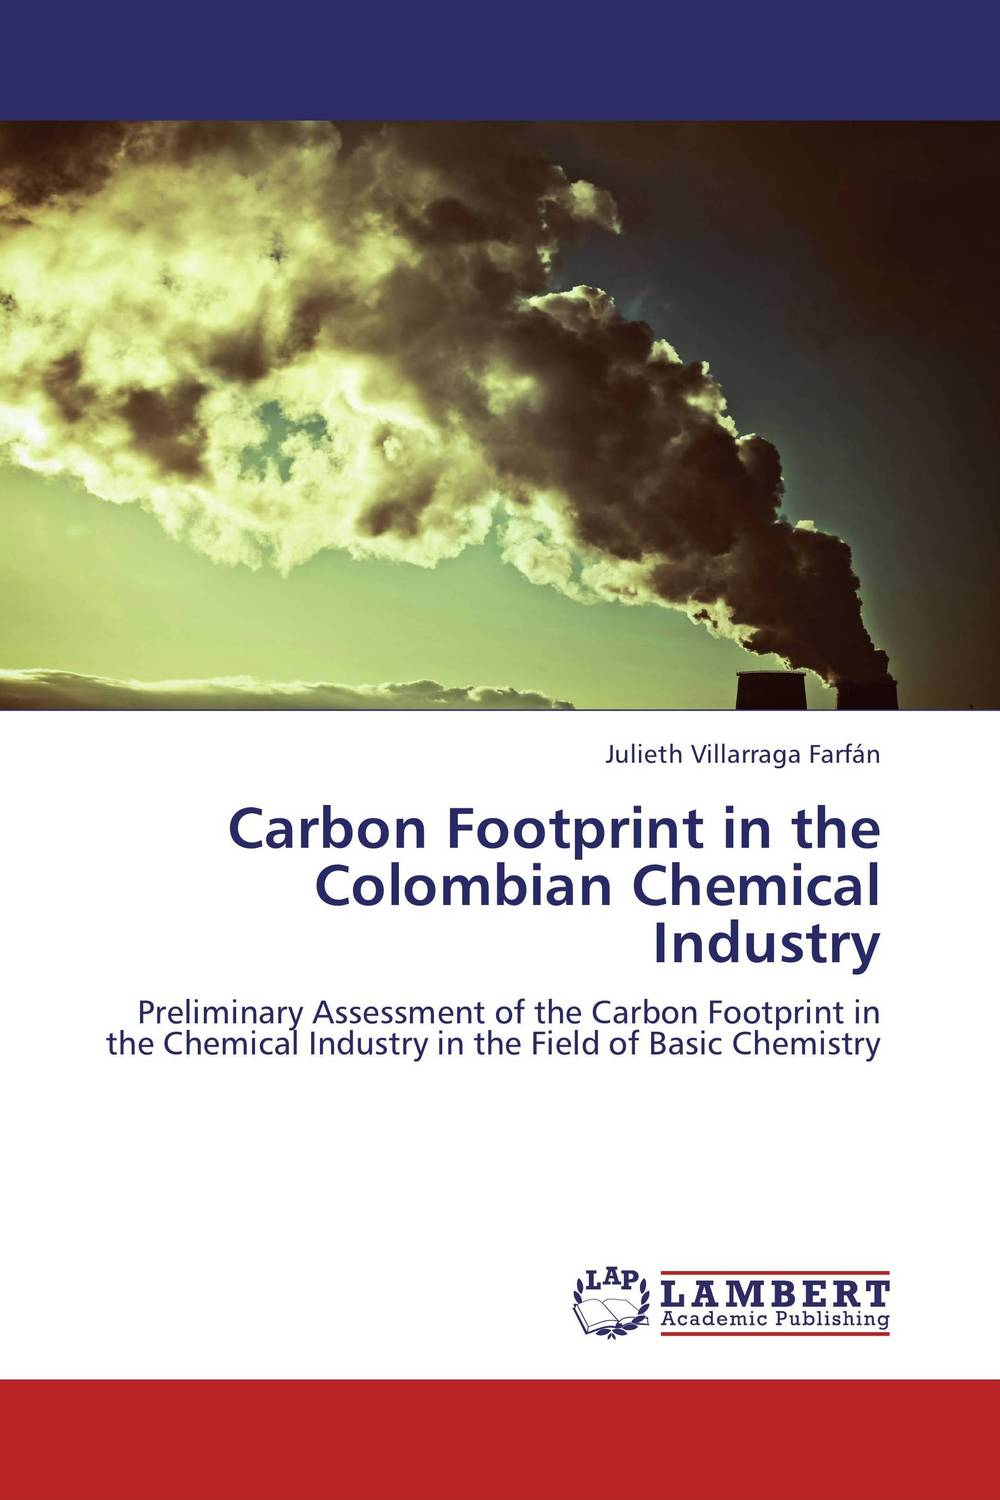 Carbon Footprint in the Colombian Chemical Industry muhammad firdaus sulaiman estimation of carbon footprint in jatropha curcas seed production